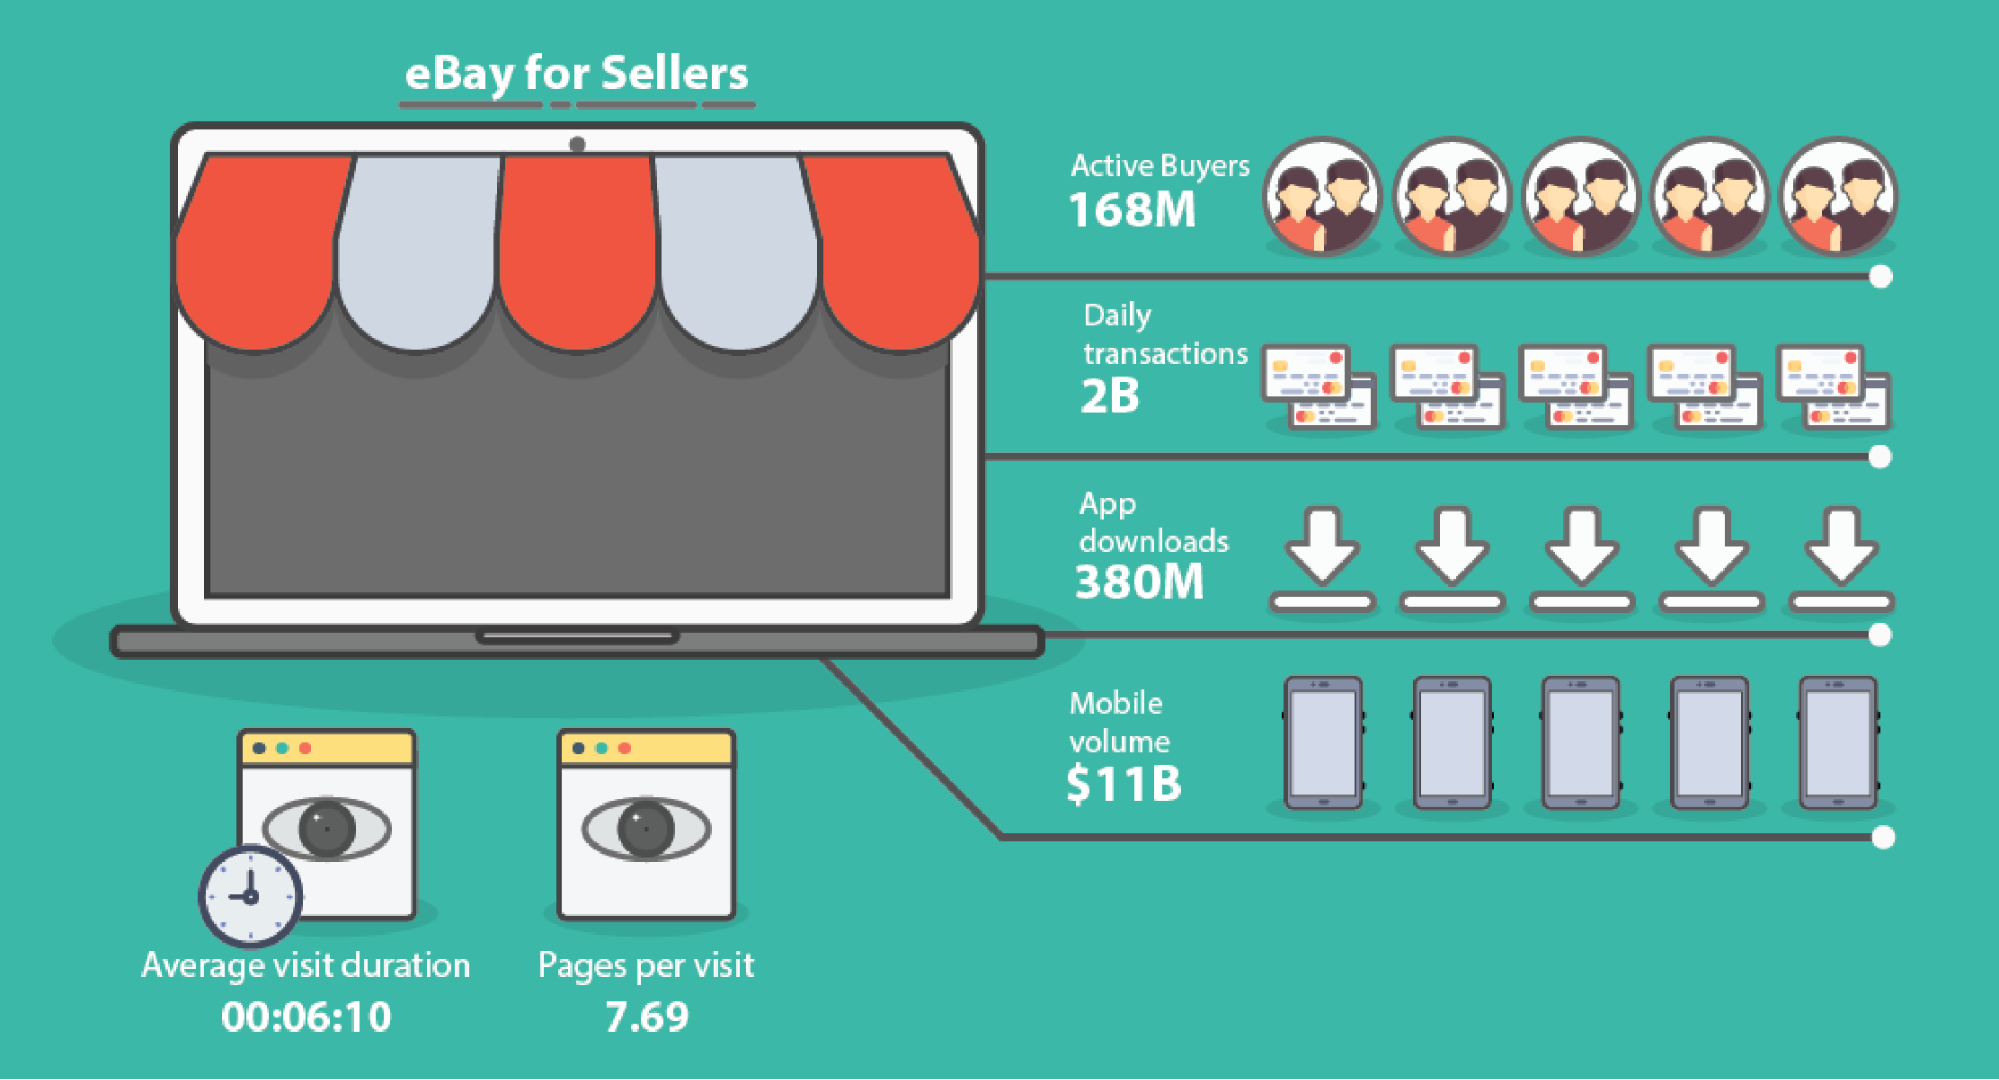 ebay for sellers infographic from 16best.net